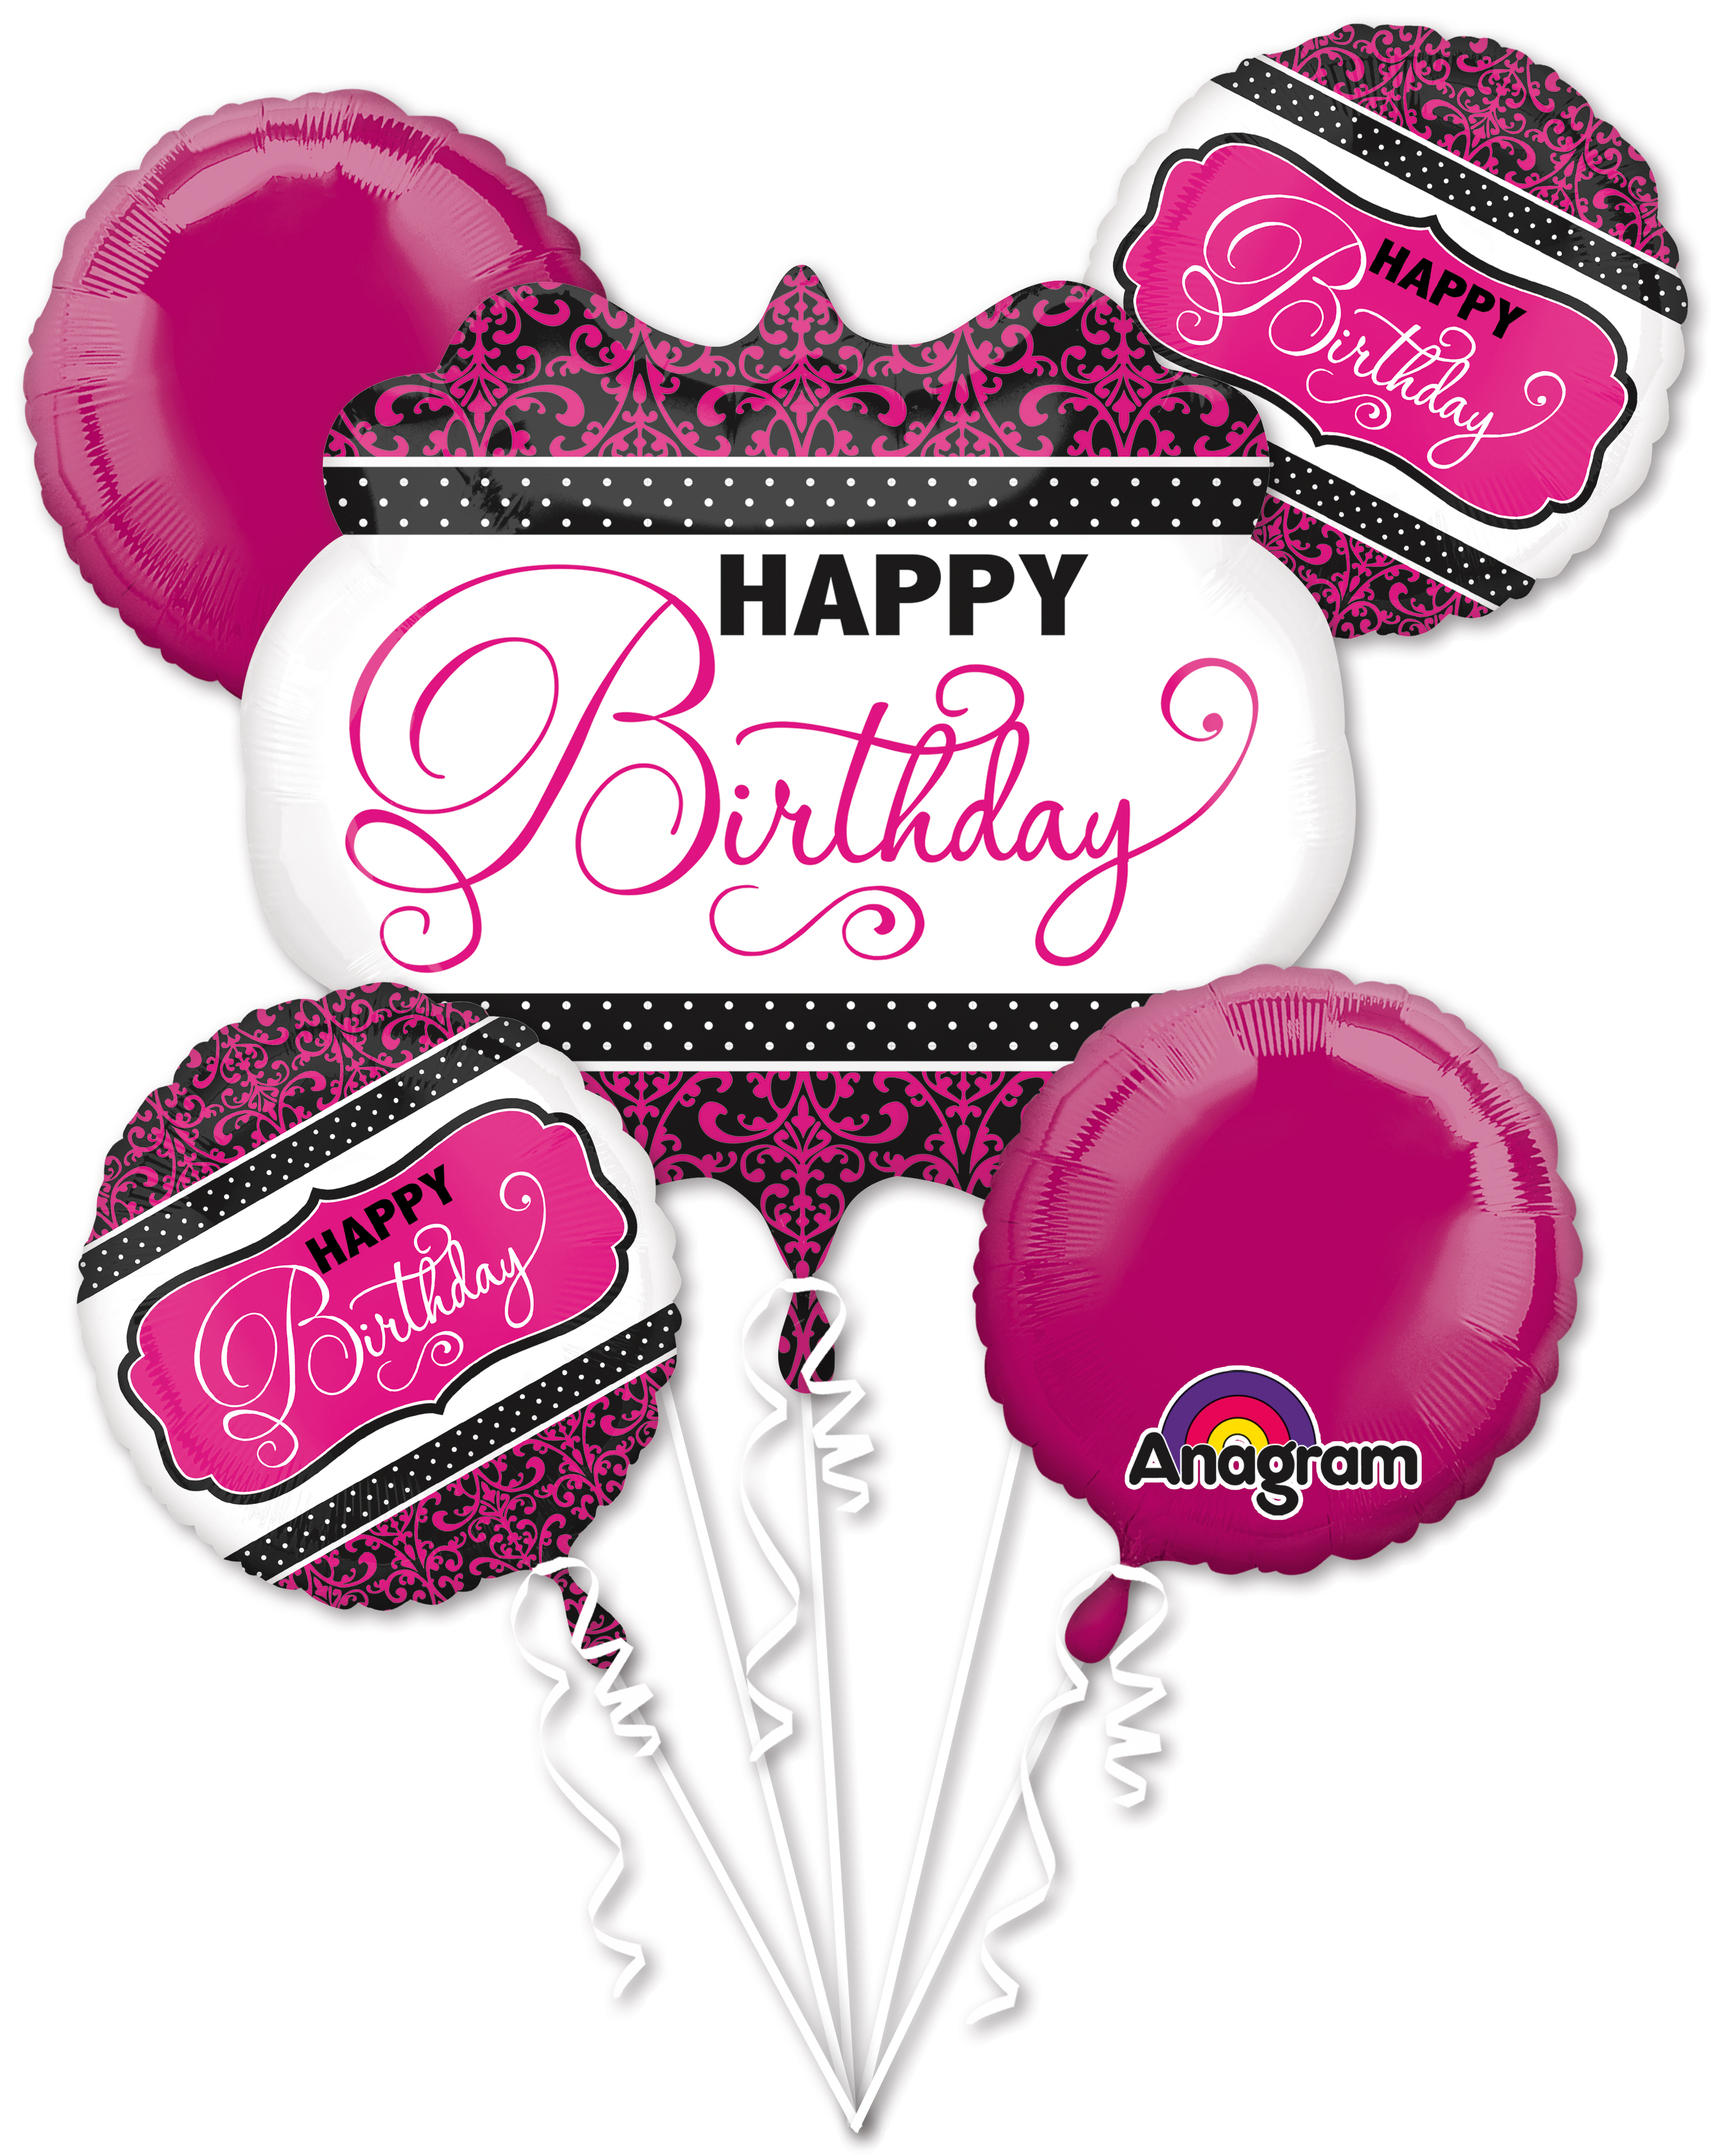 Bouquet Pink, Black, White Birthday Balloon Packaged